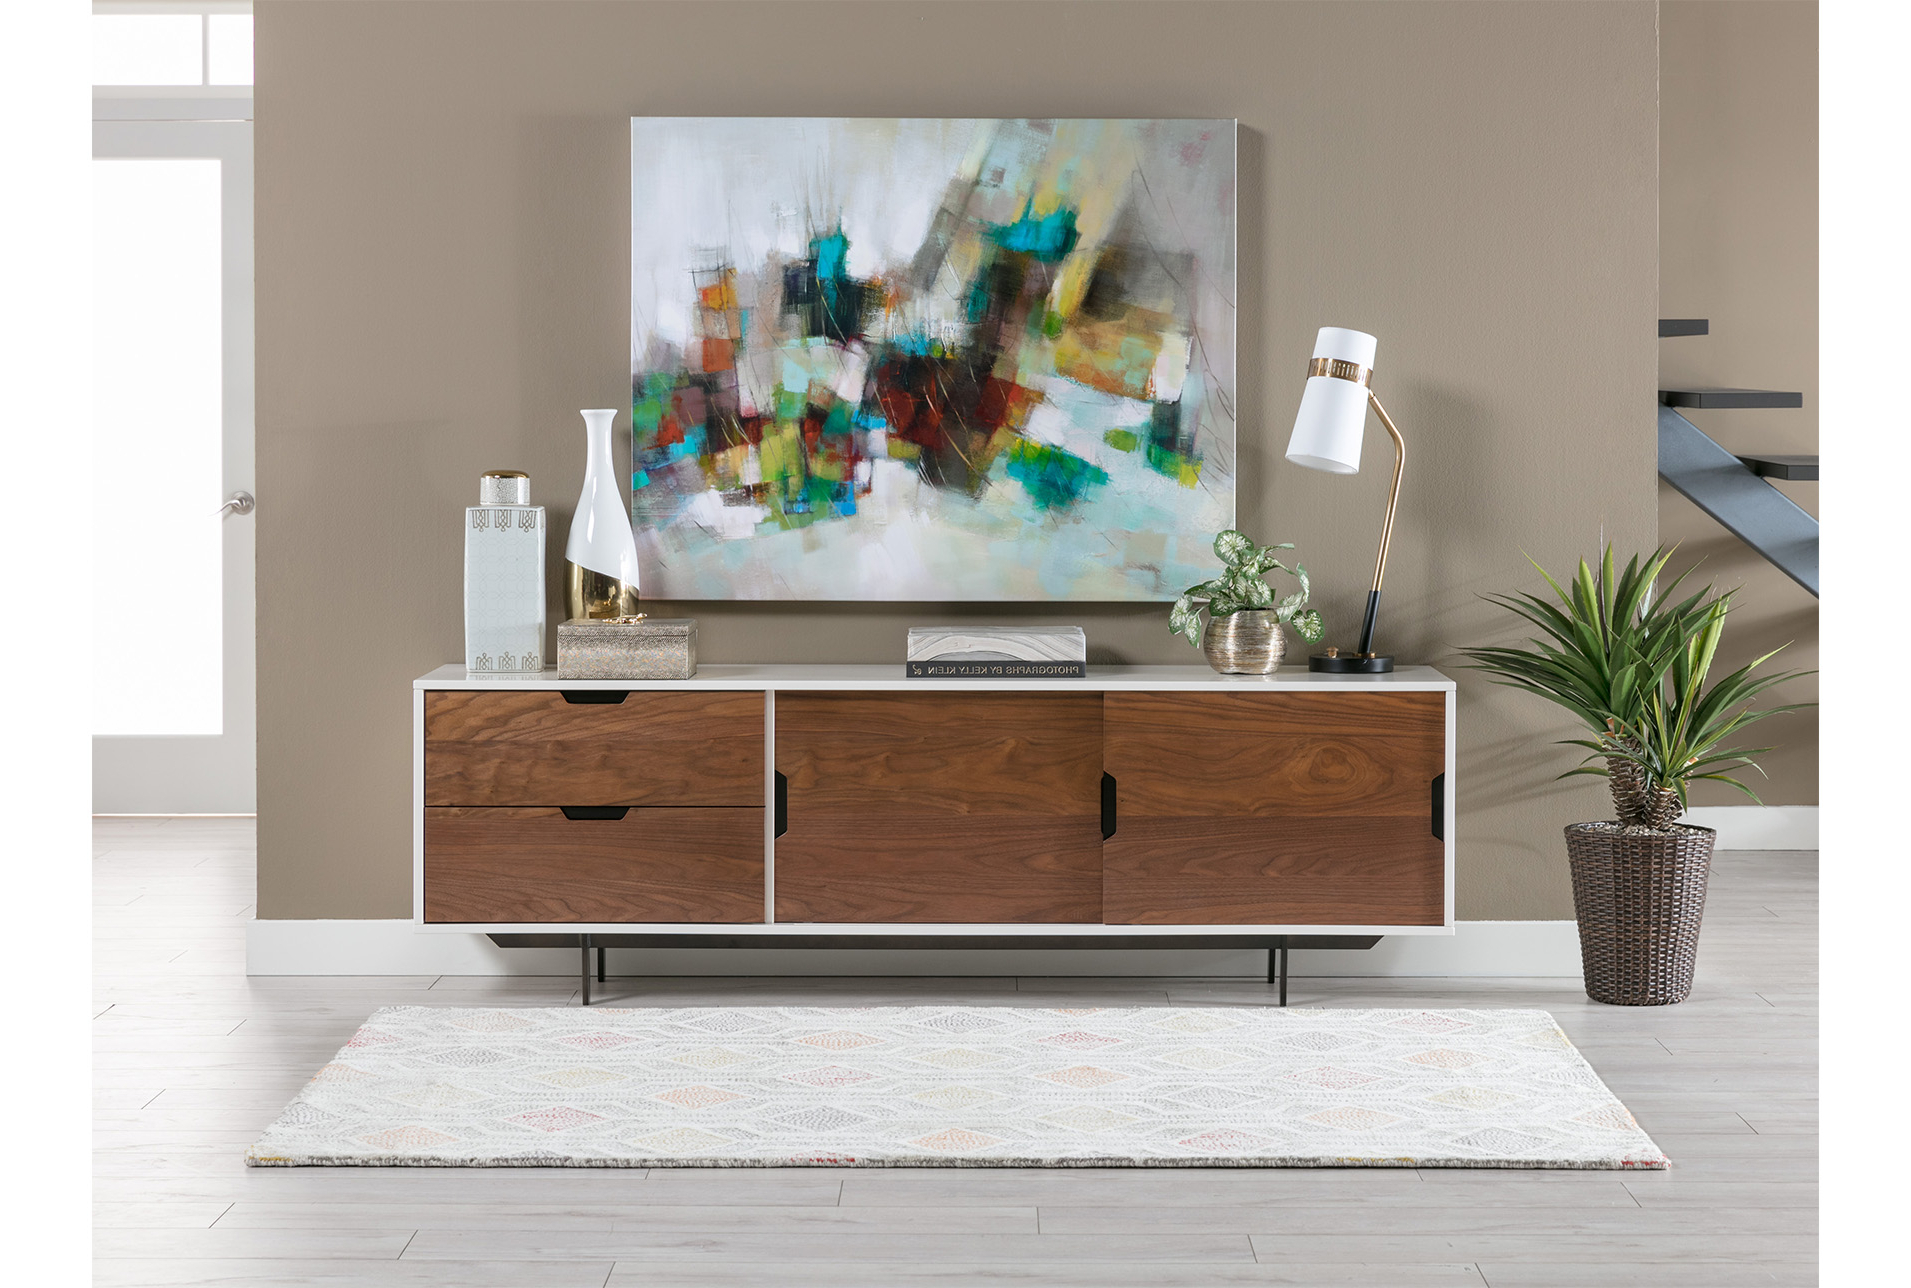 Bale 82 Inch Tv Stand | Products | Living Room, Room, Home Living Room Pertaining To Bale 82 Inch Tv Stands (View 2 of 20)